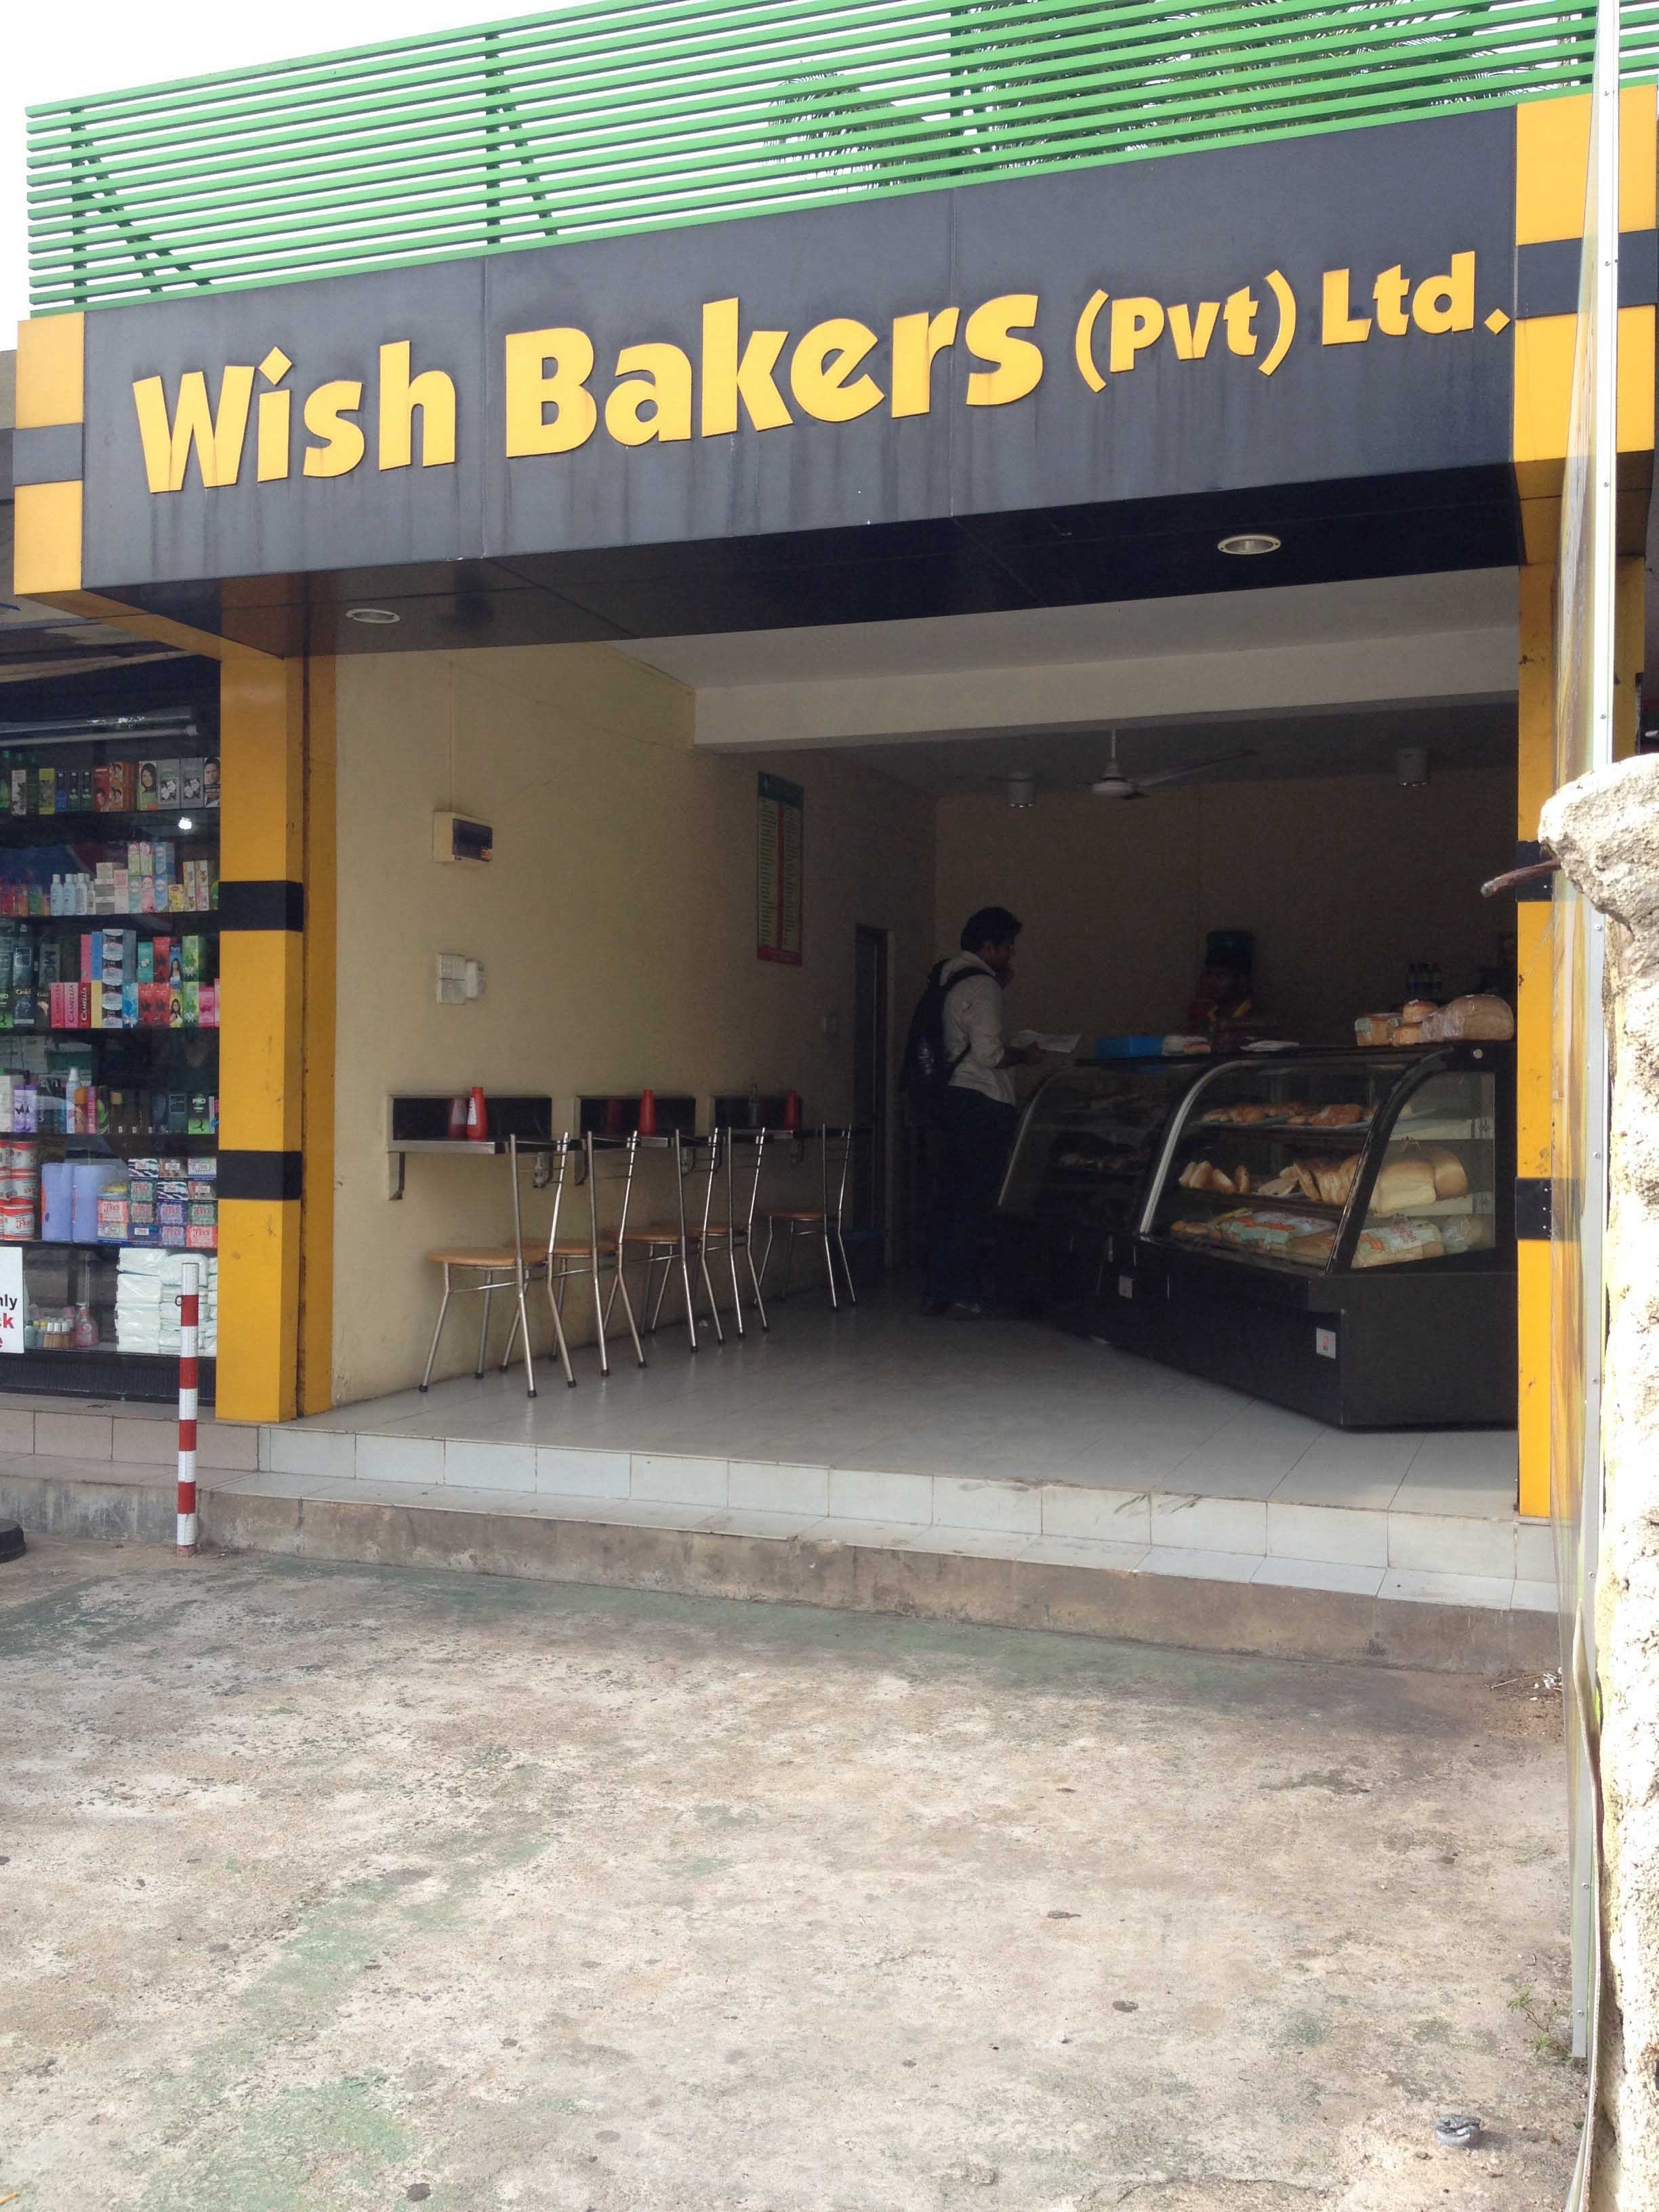 Wish Bakers